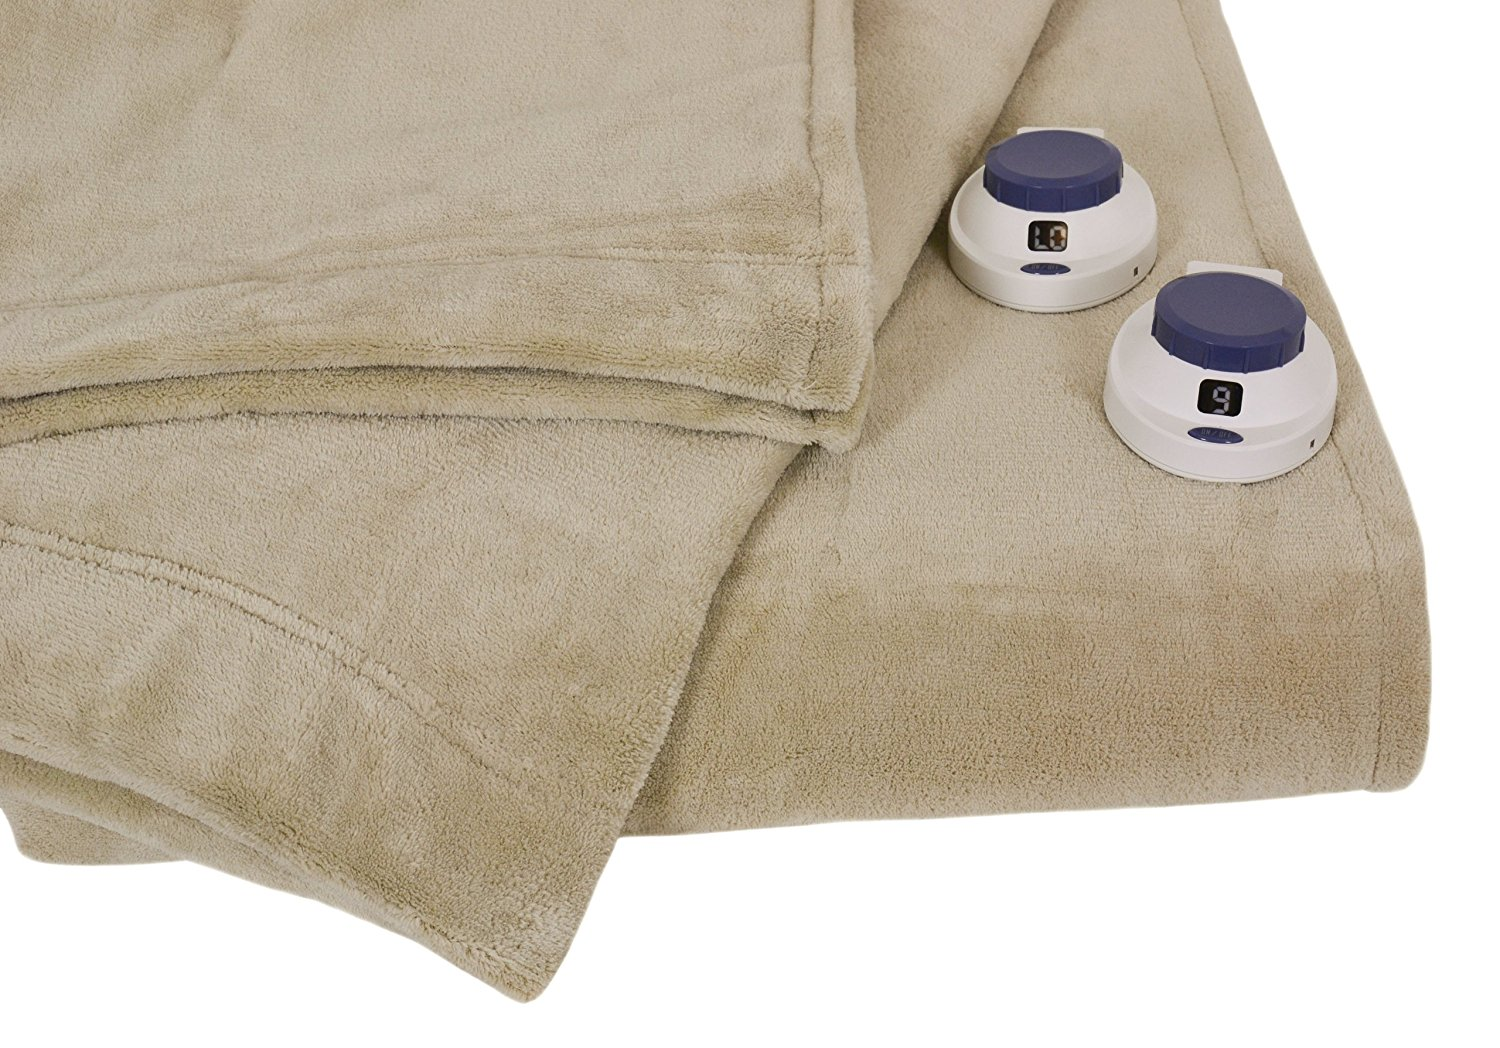 3. Serta Luxe Plush Low-Voltage Electric Heated Micro-Fleece Blanket